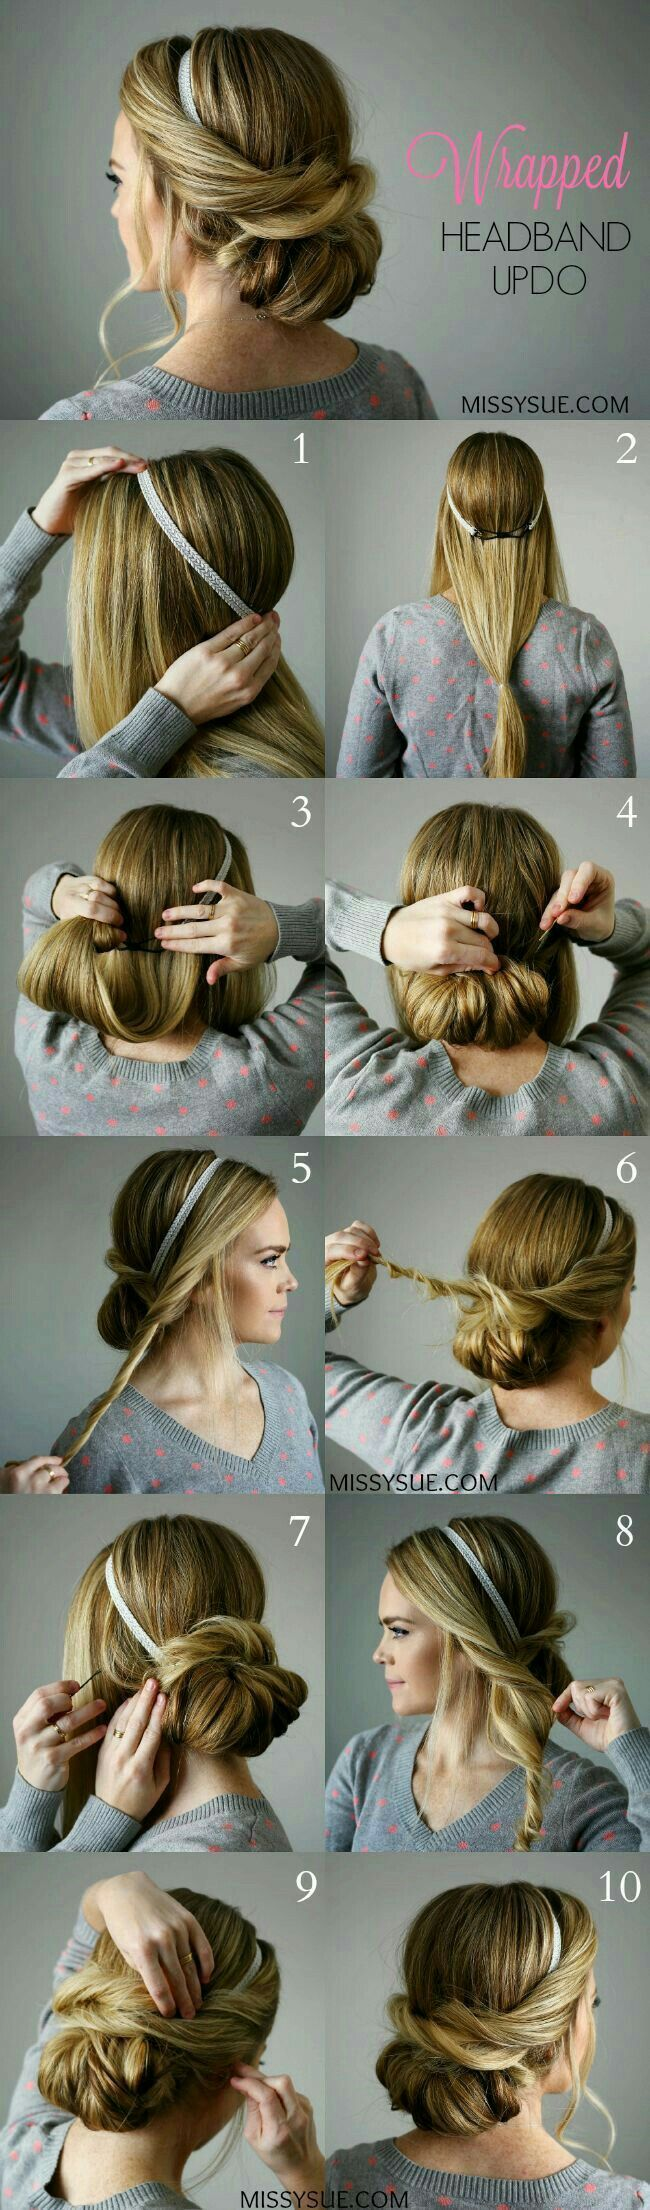 Fancy easy updo dh emmi pinterest easy updo updo and fancy